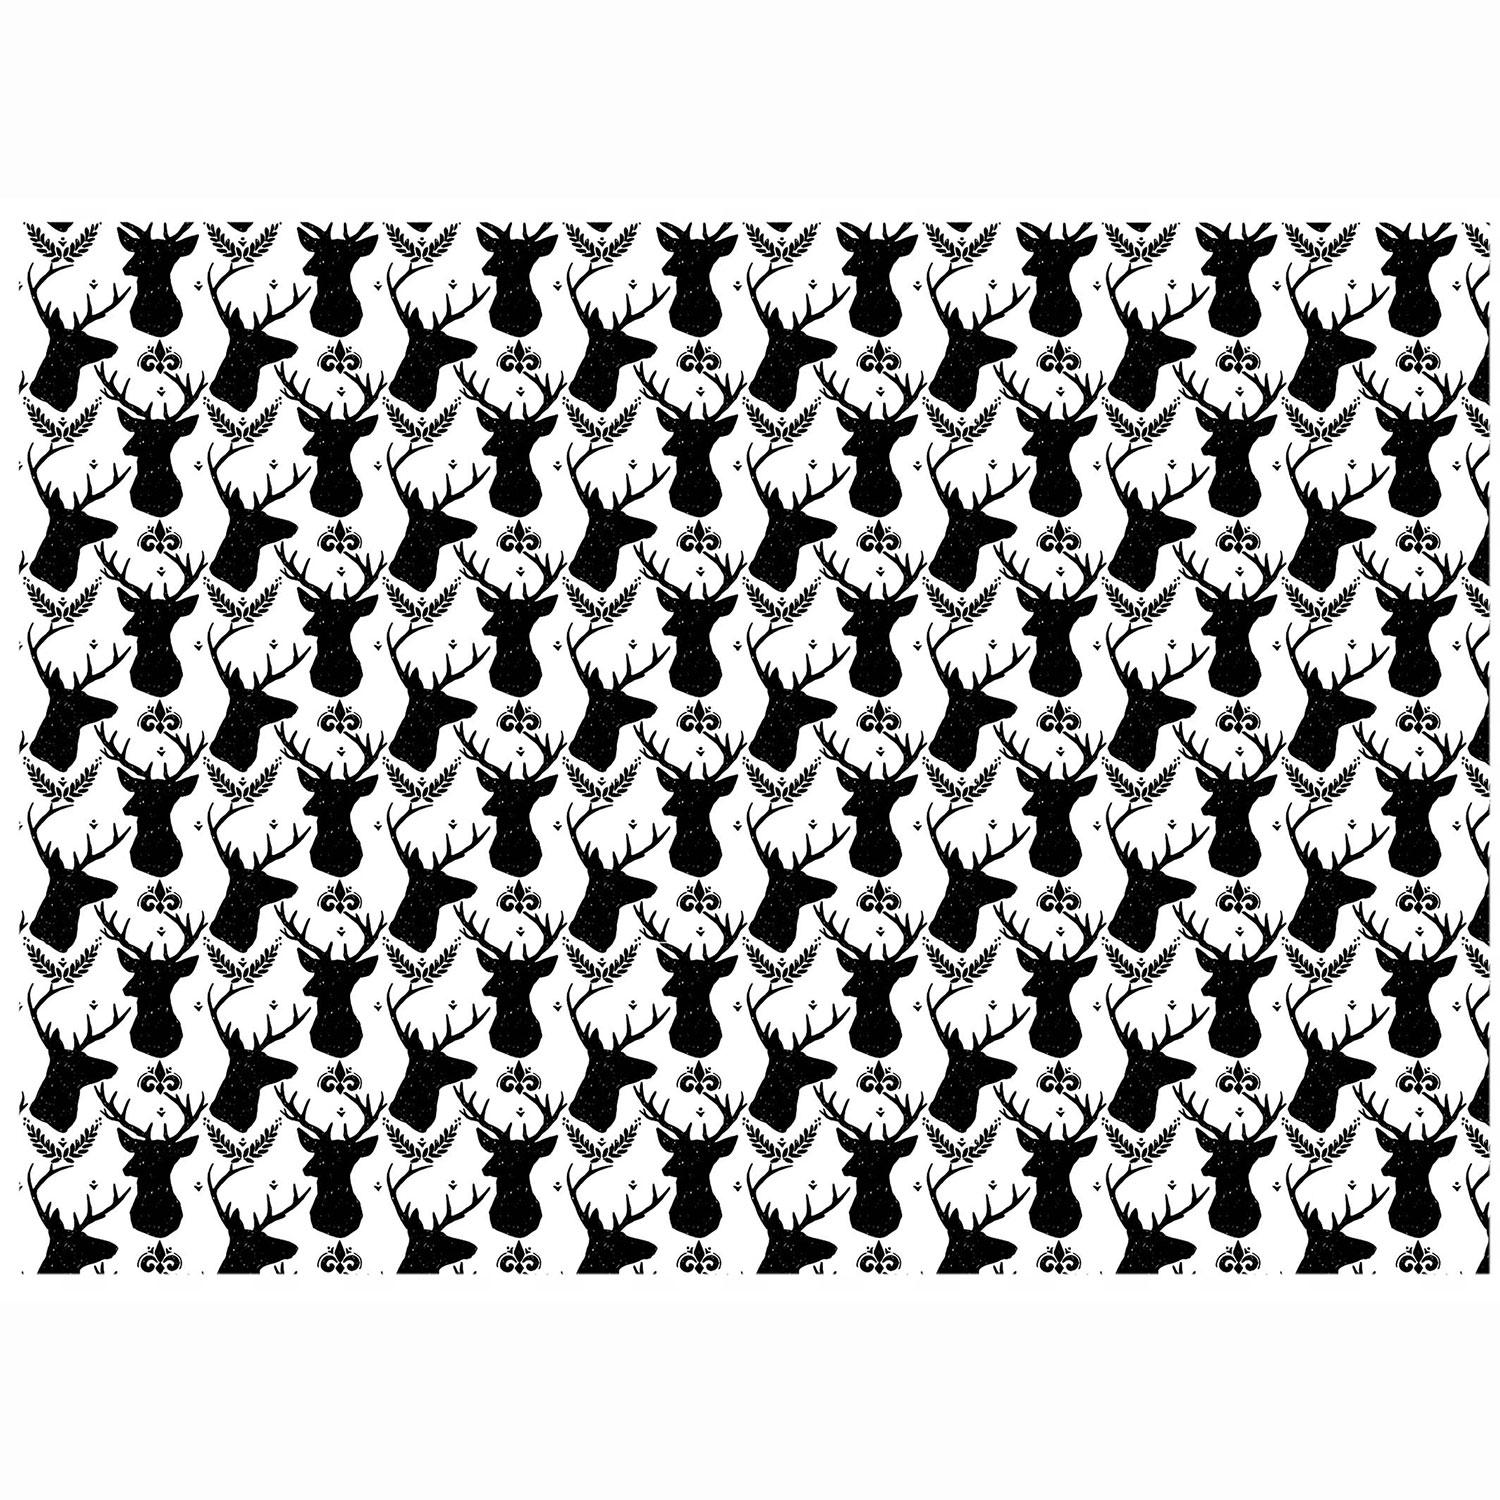 Reindeer Heads Black Enamel Decals